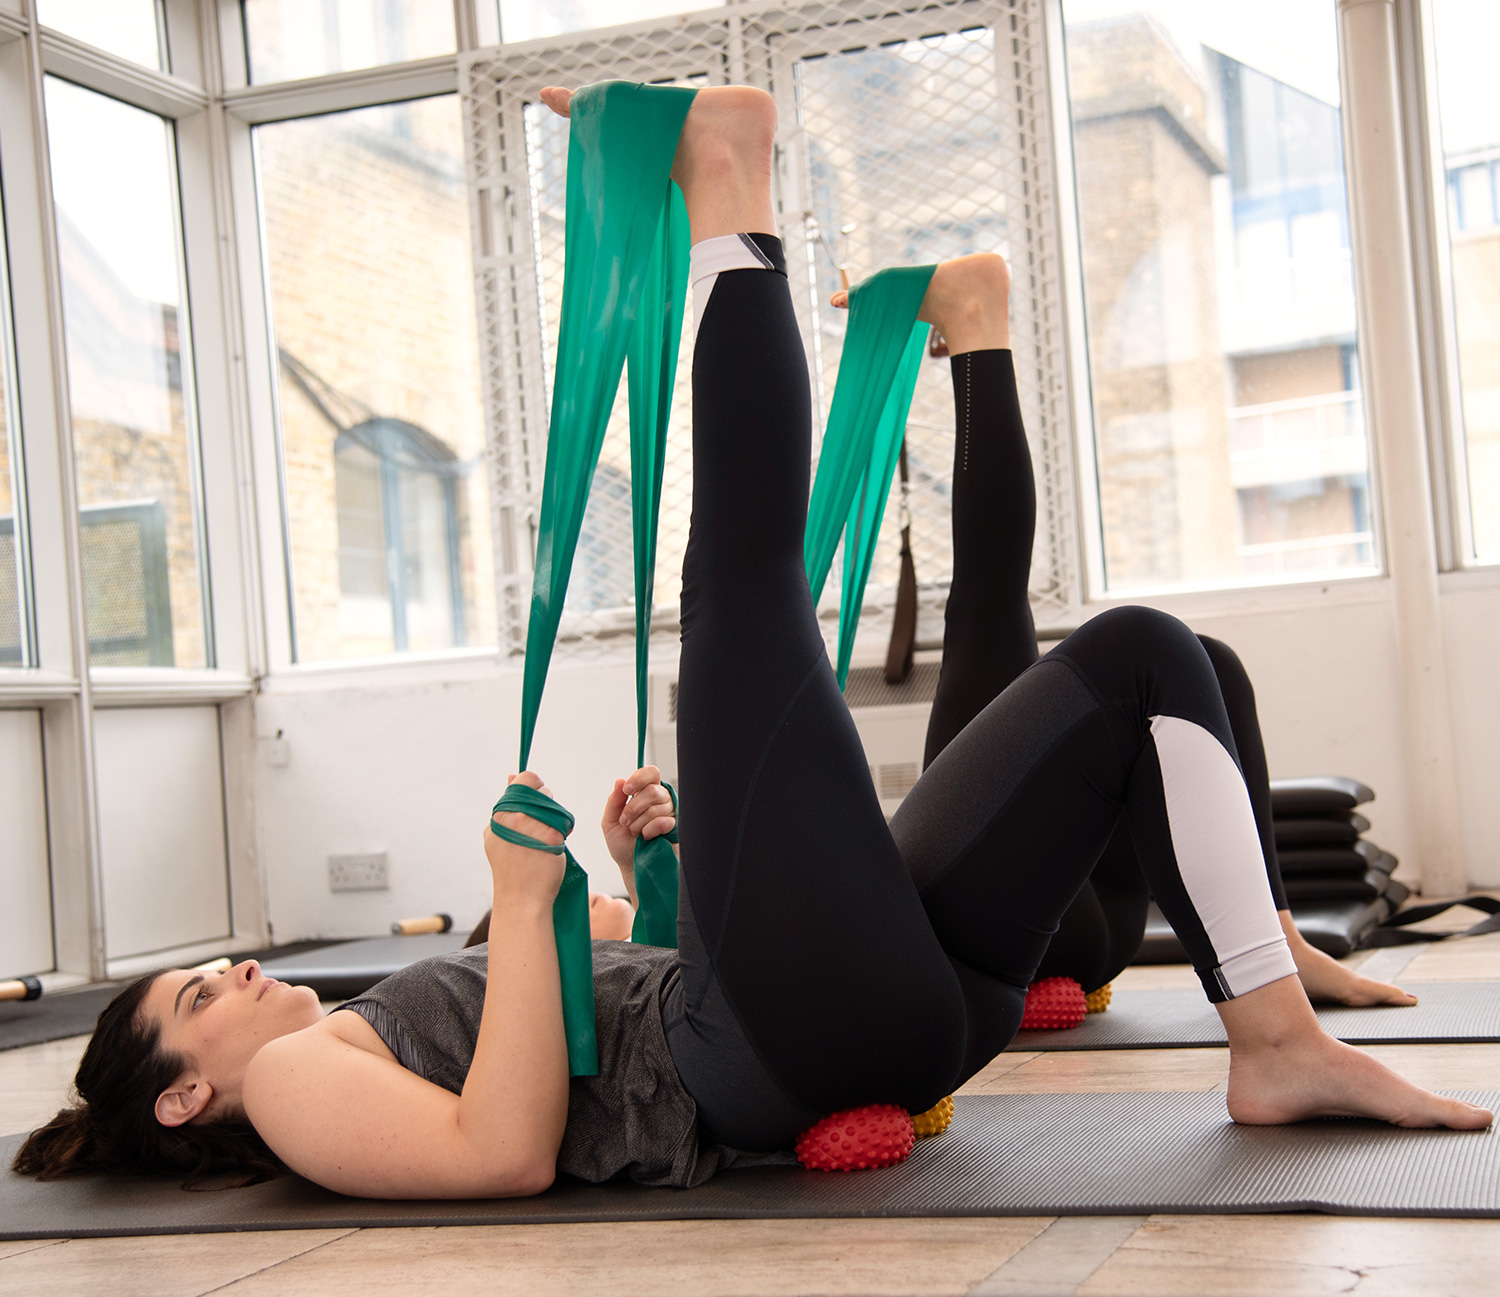 Trigger Point (from £28) - Release tightness and improve your mobility in this class. Working into the muscle fascia to allow greater flexibility and development of muscles.